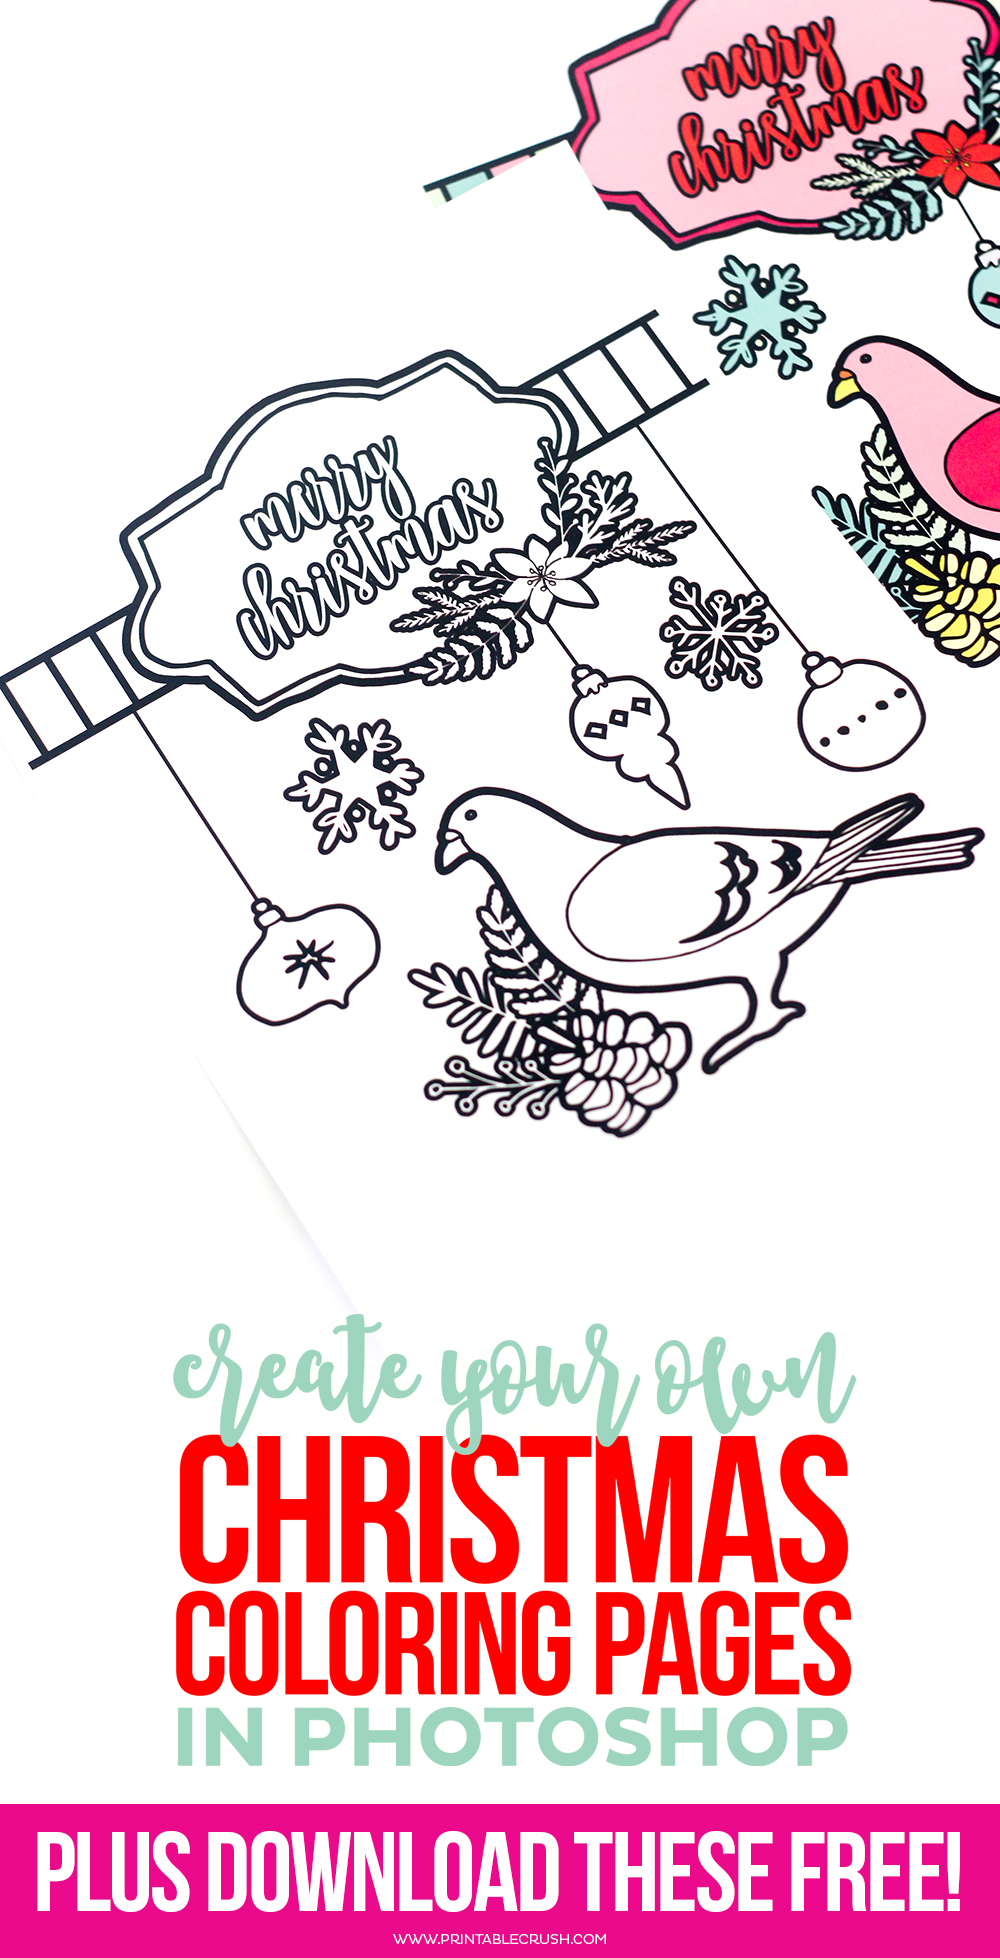 Learn to Create Christmas Coloring